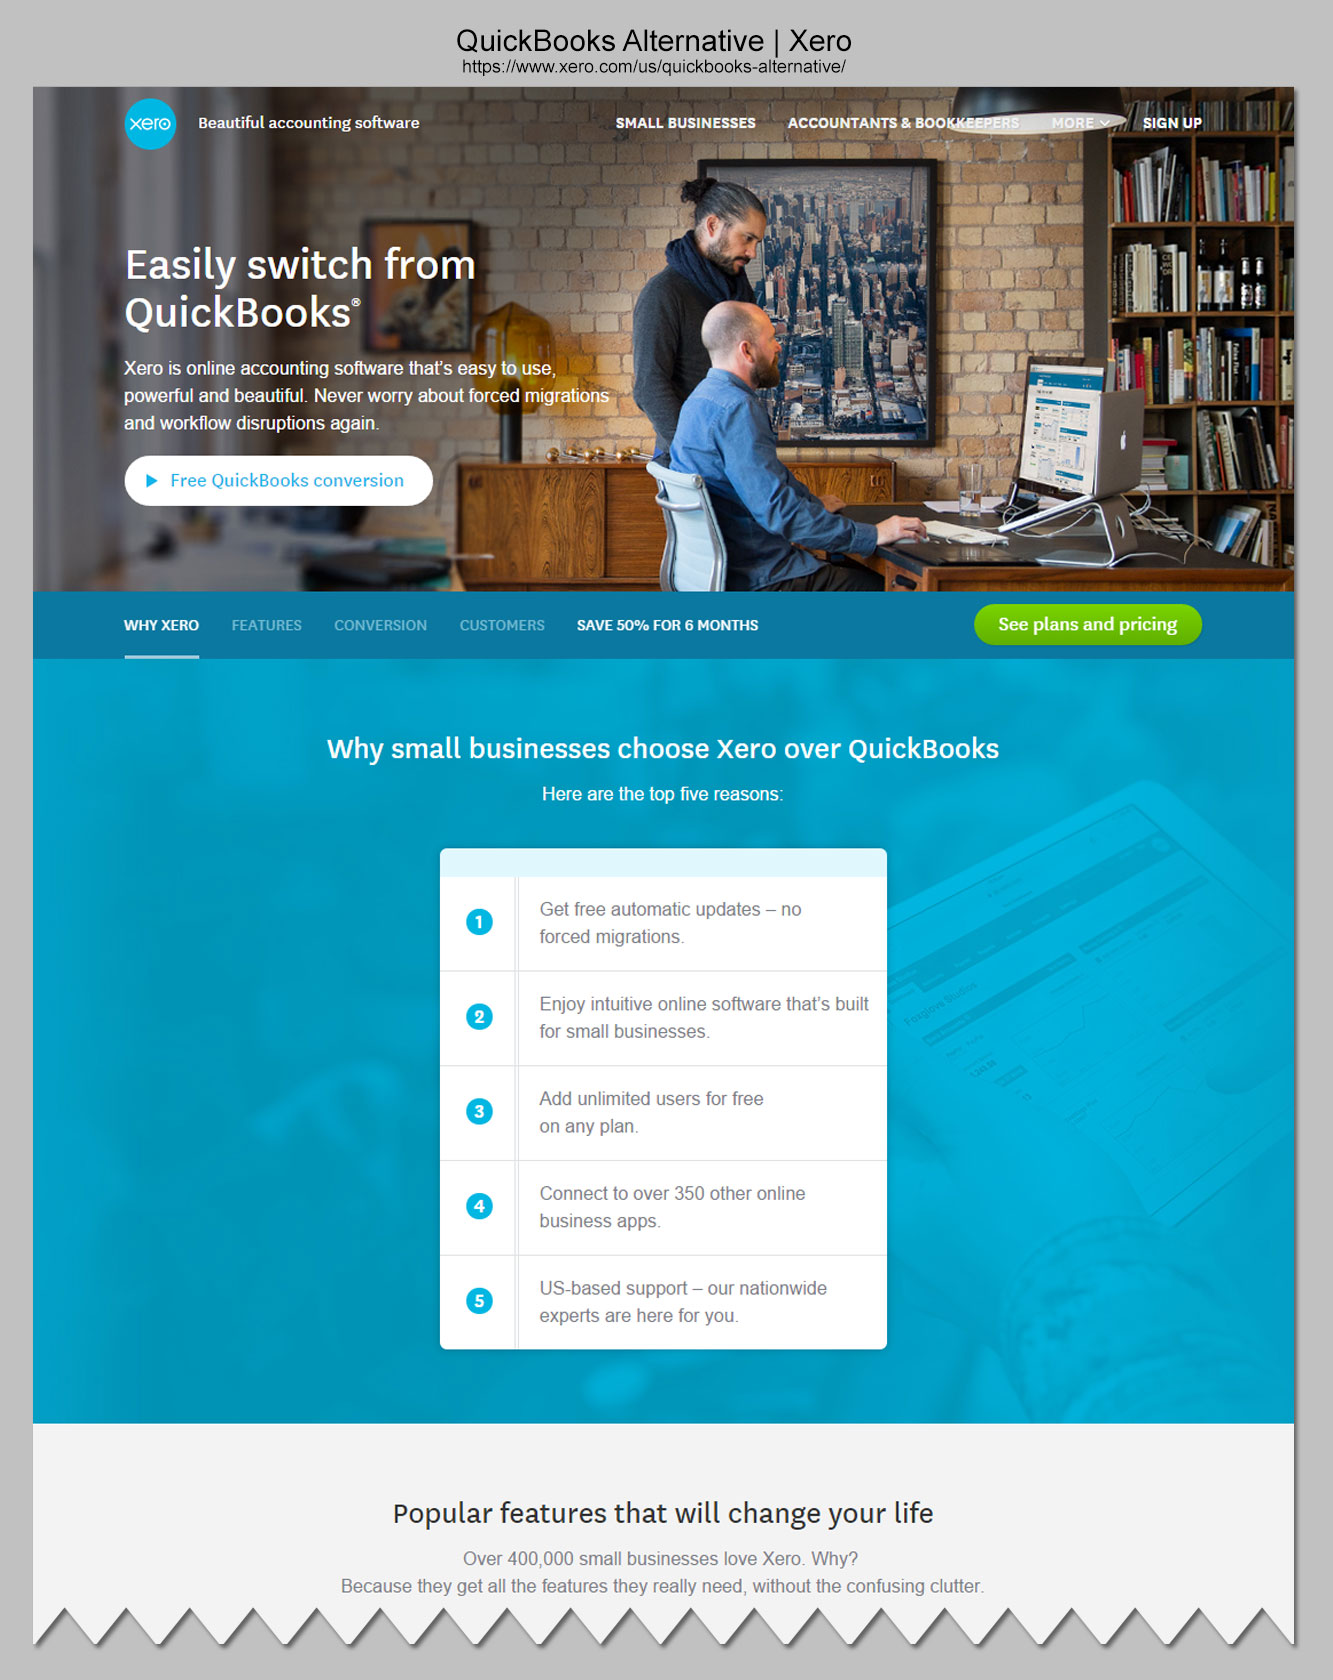 xero-quickbooks-alternative